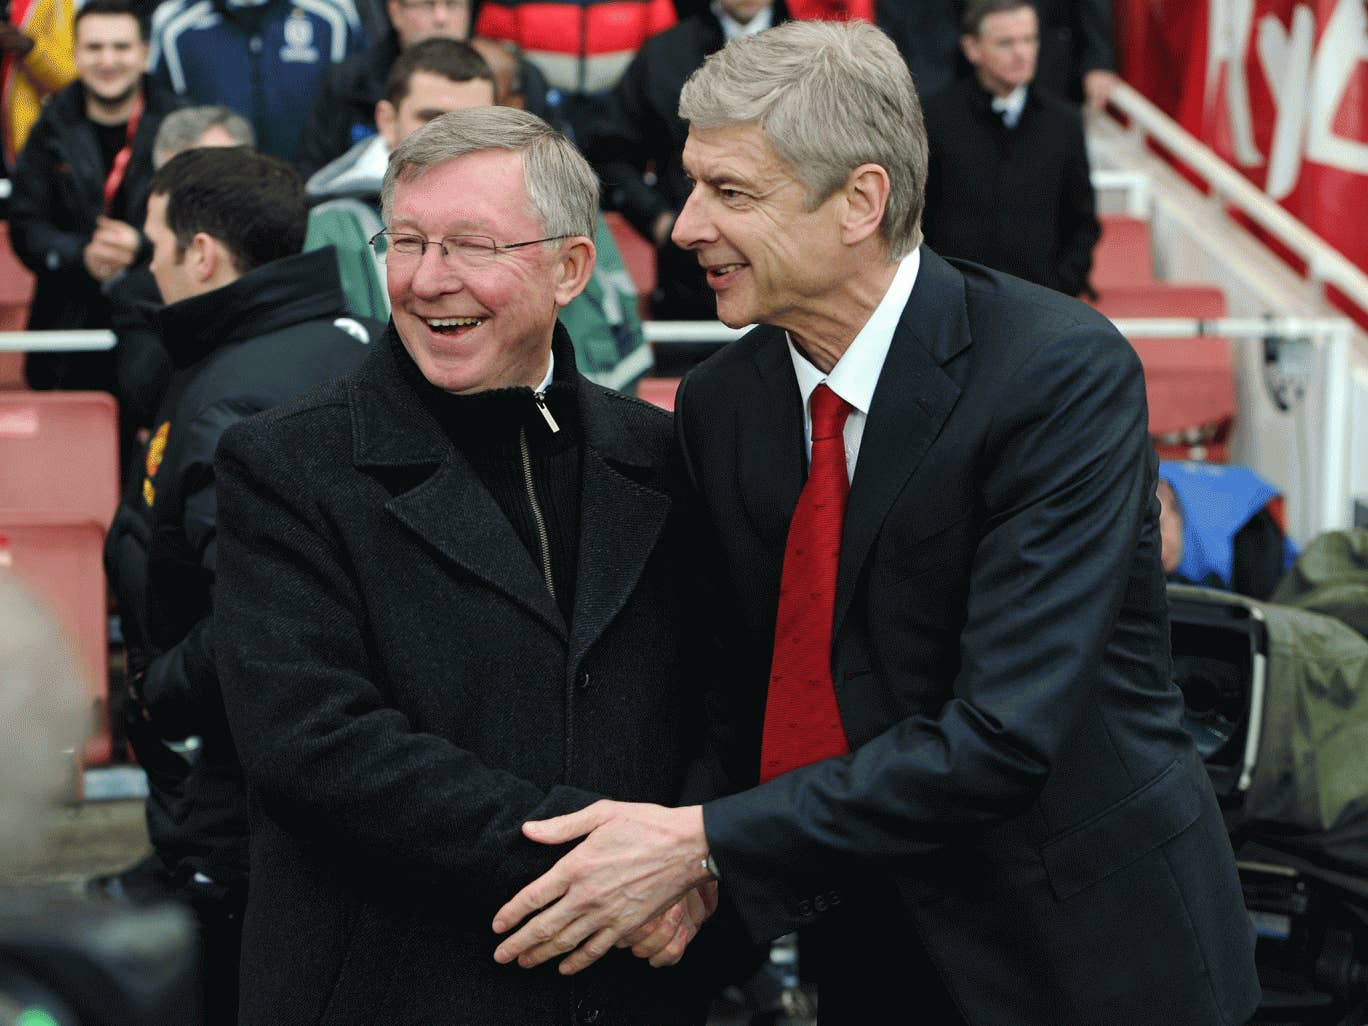 Arsene Wenger the Manager of Arsenal and Alex Ferguson the Manager of Manchester United shake hands